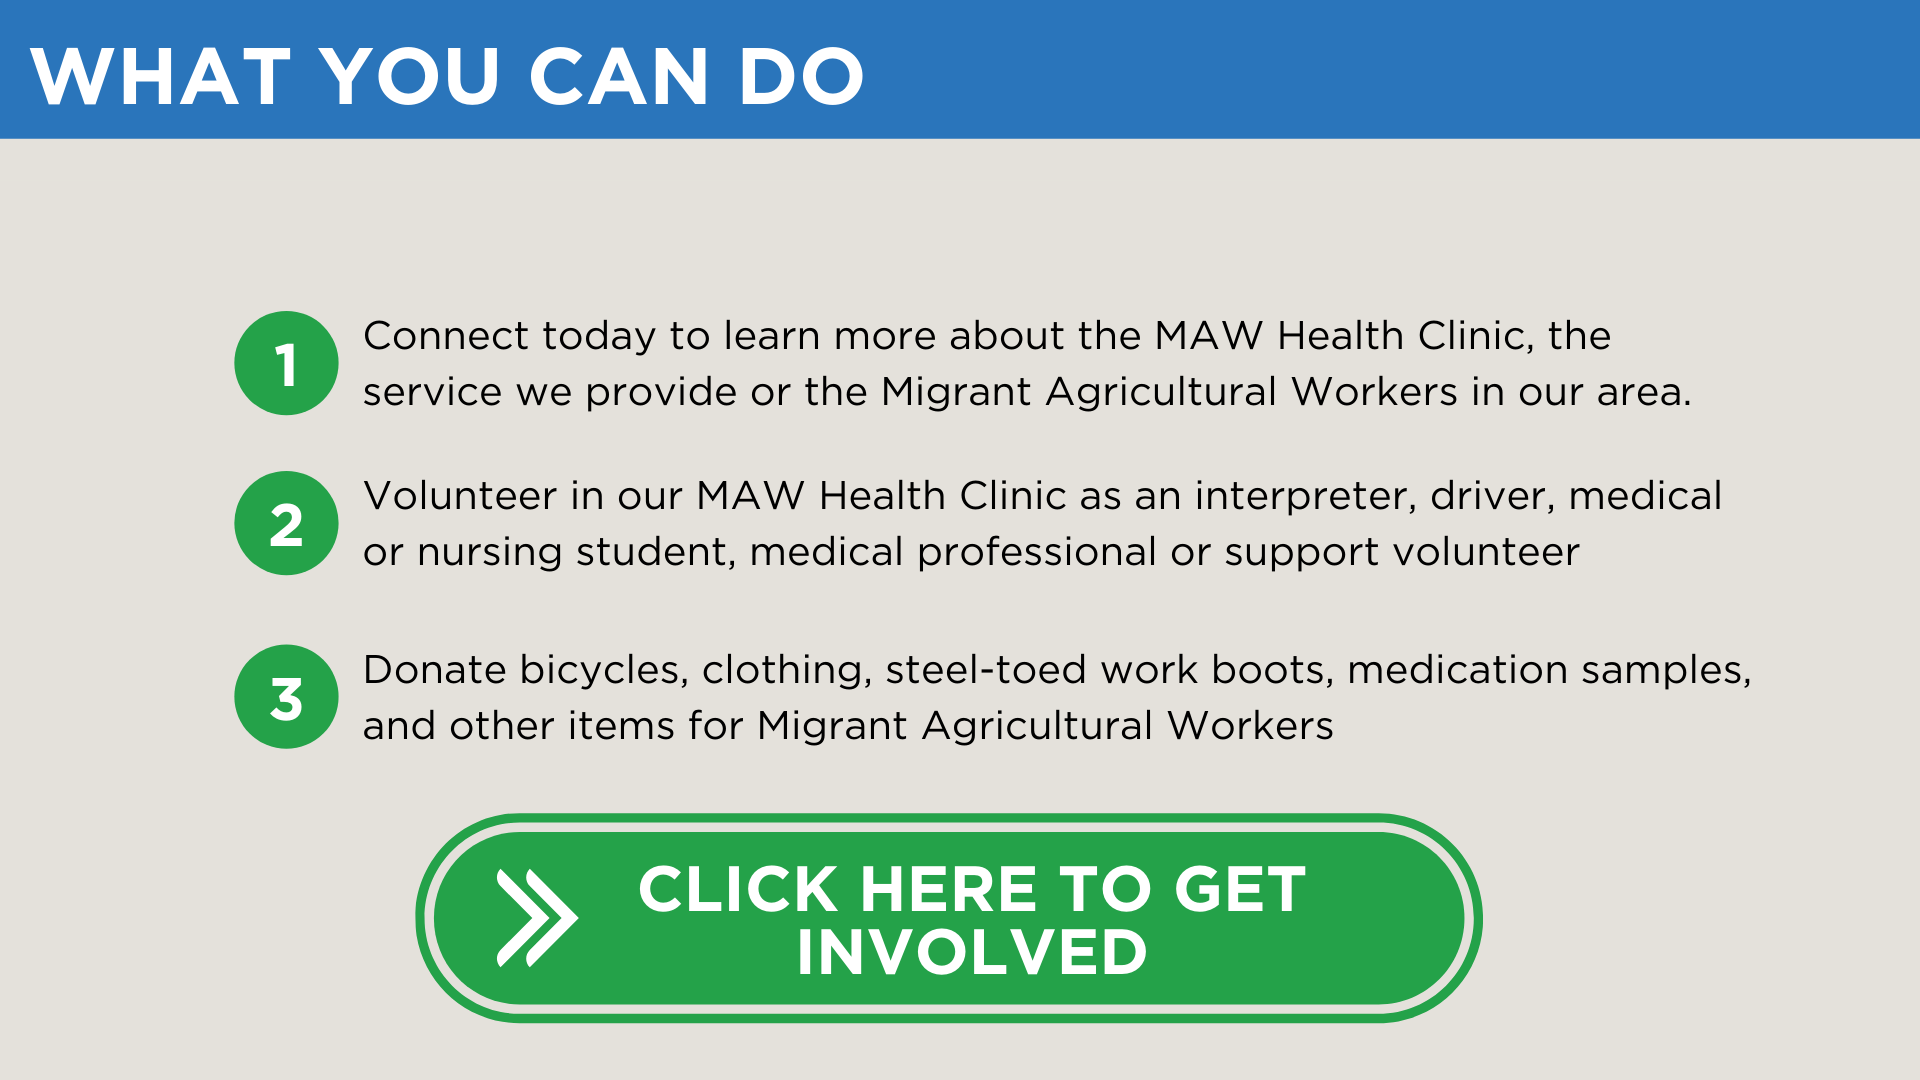 MAW Clinic - What you can do 2